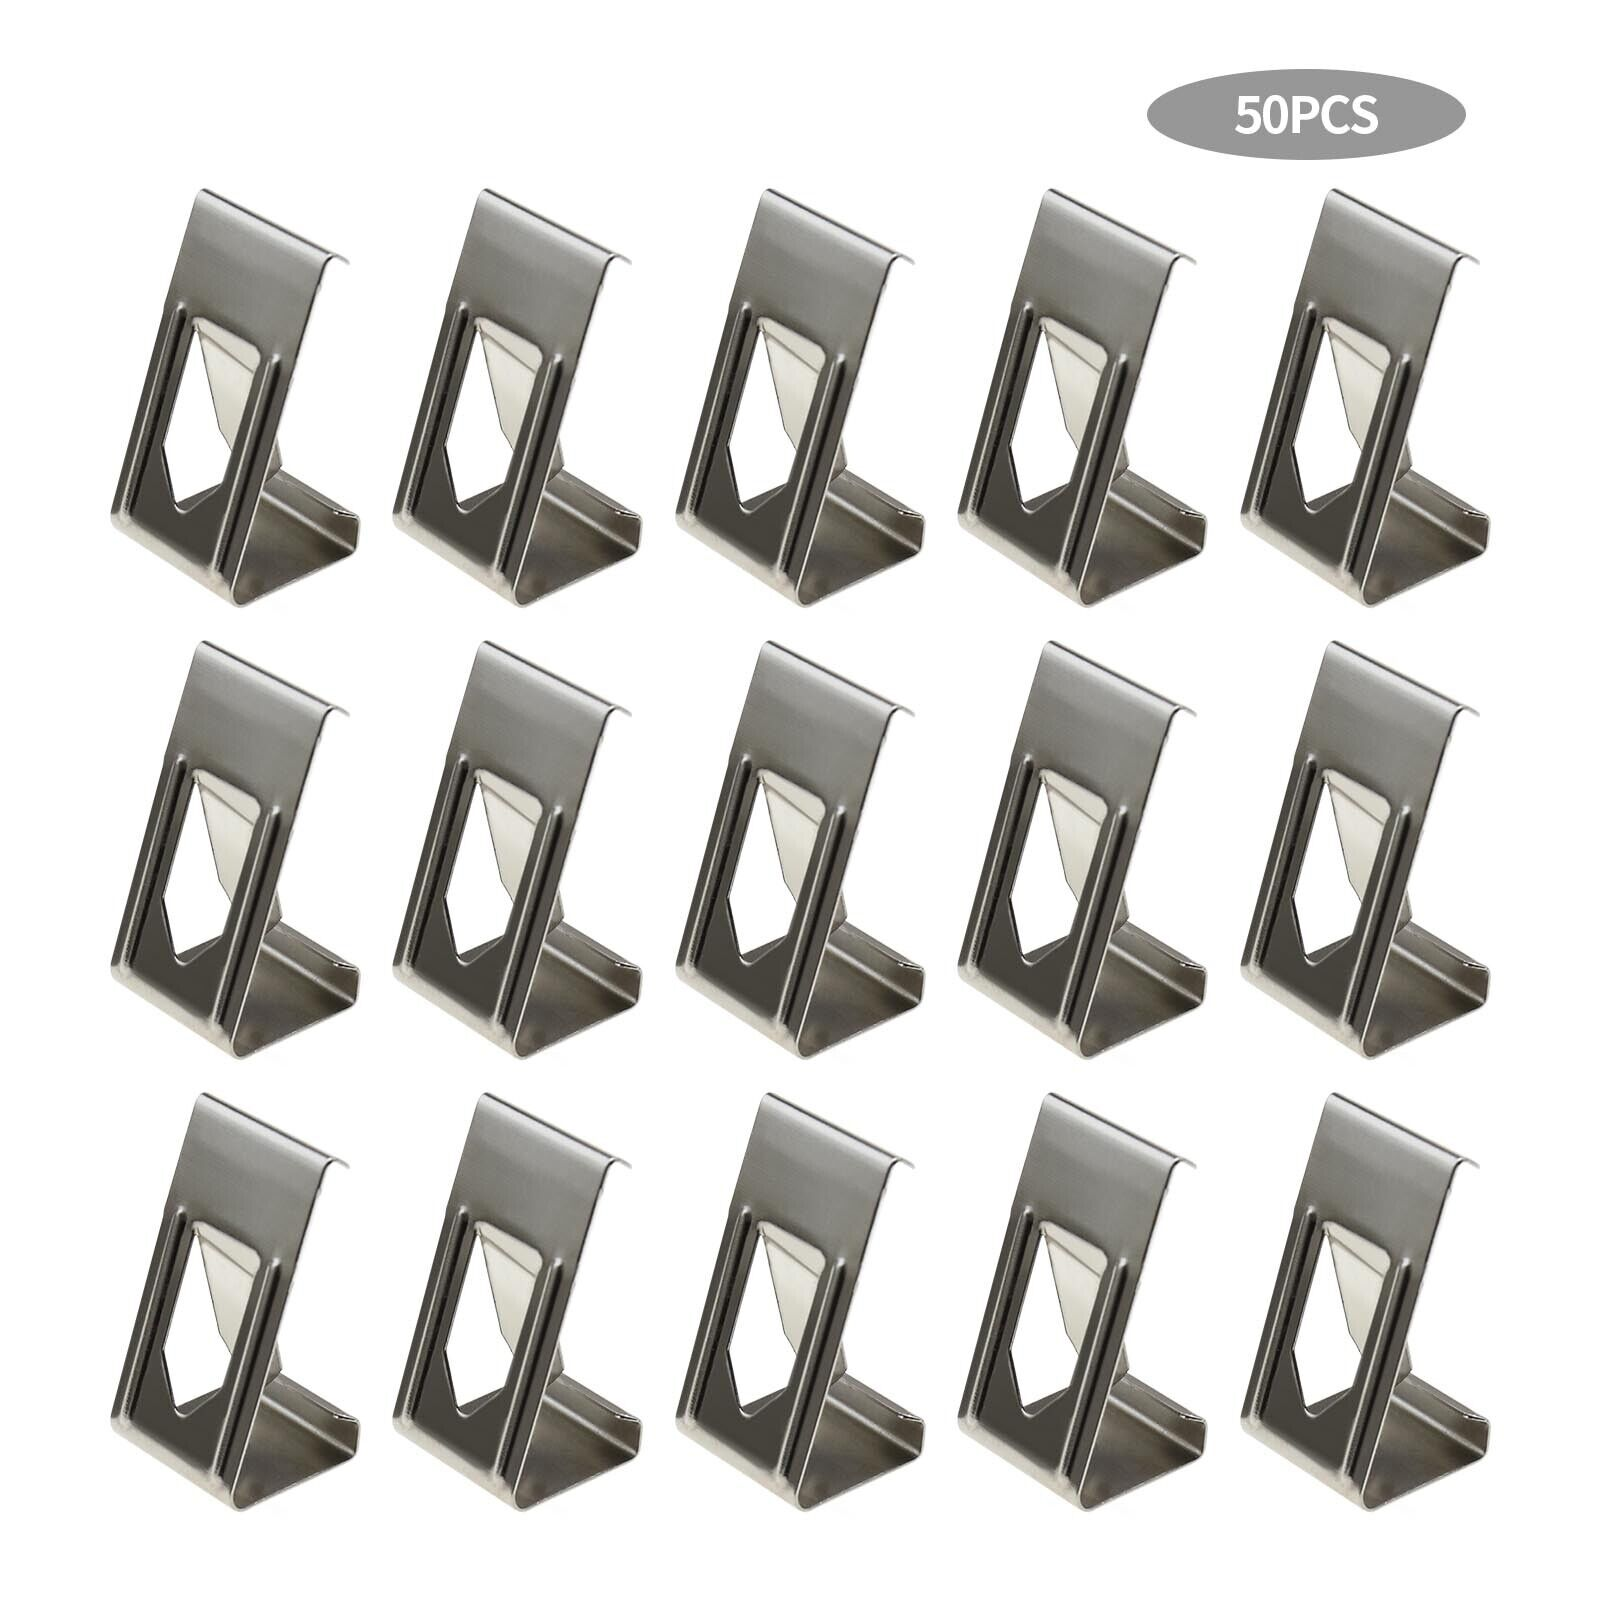 50Pcs 3D Printer Heated Bed Securing Clips Holder Metal Spring Turn Clamps